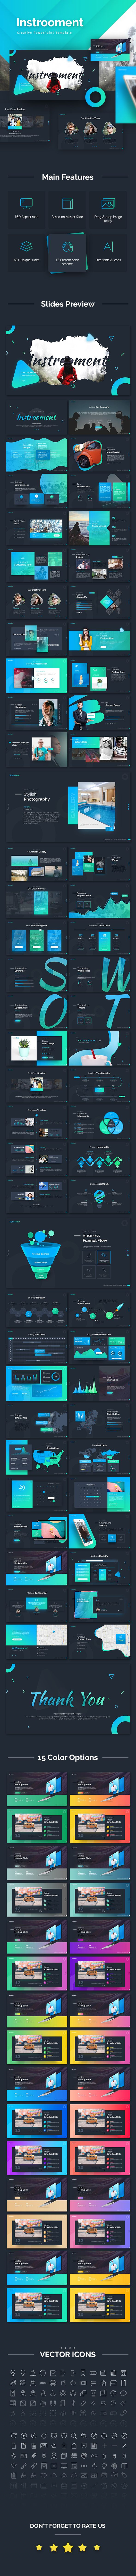 Instrooment creative powerpoint template apresentao faculdades instrooment creative powerpoint template apresentao faculdades e design toneelgroepblik Choice Image